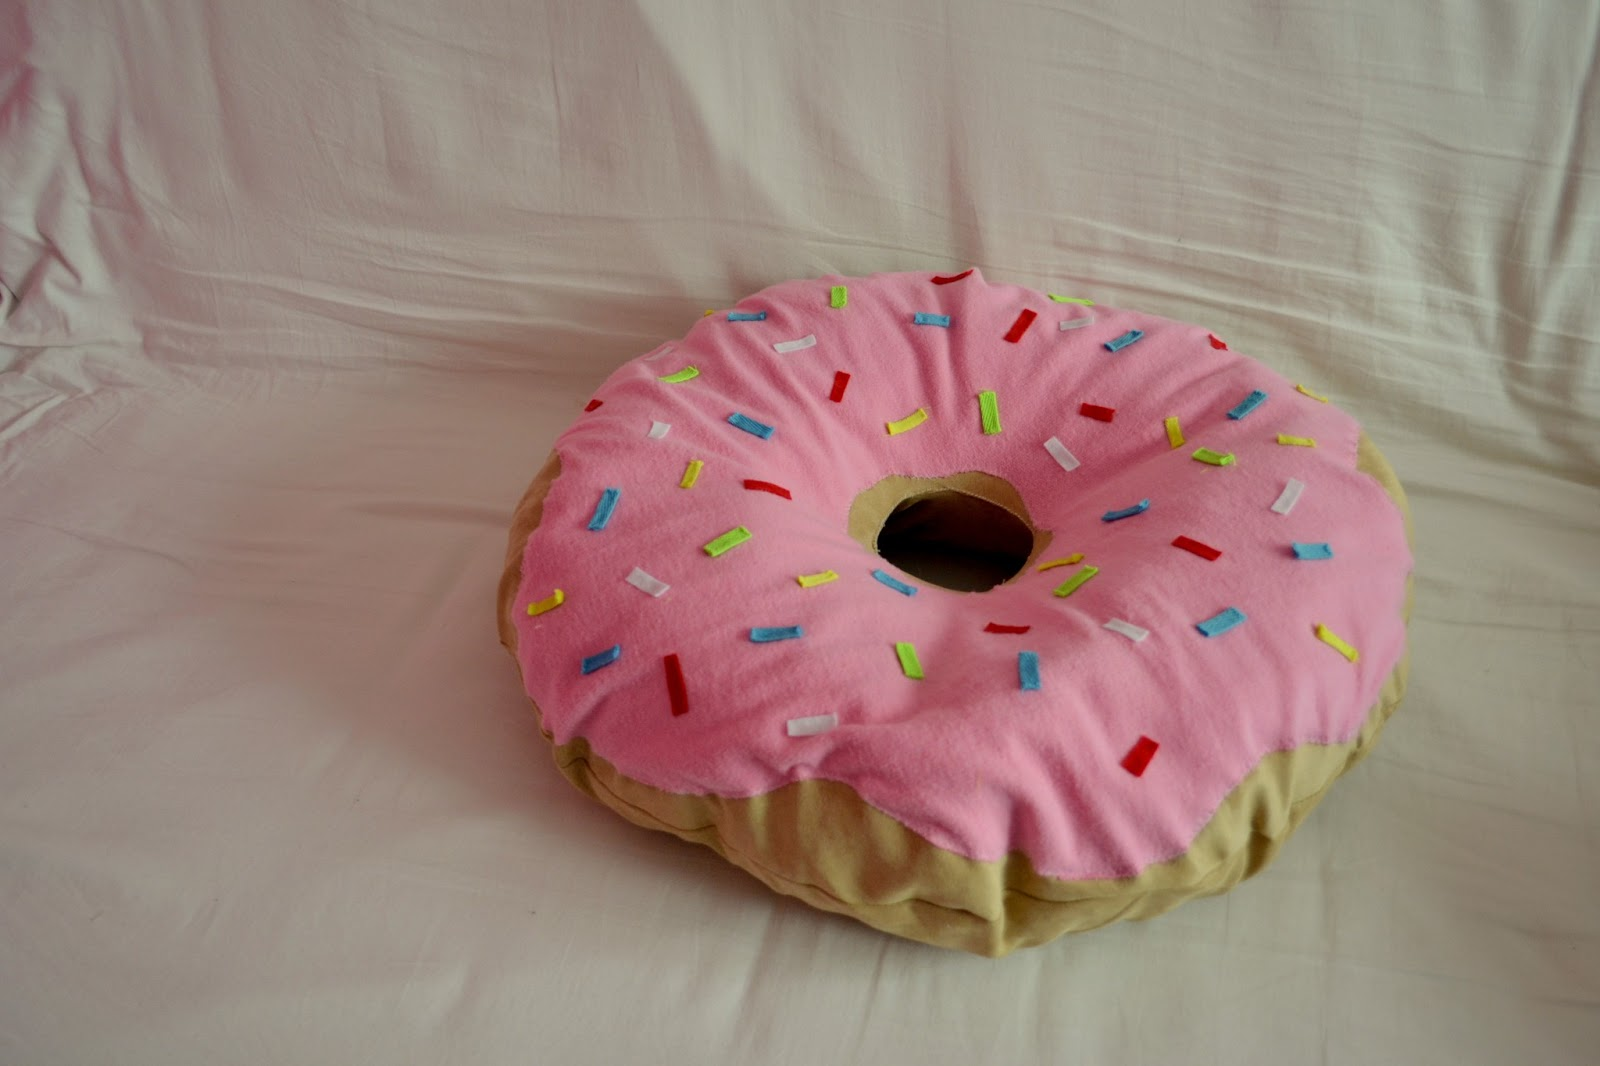 Diy with elli do it yourself tutorials inspiration 3 3 roomspiration diy doughnut pillowplushie solutioingenieria Images